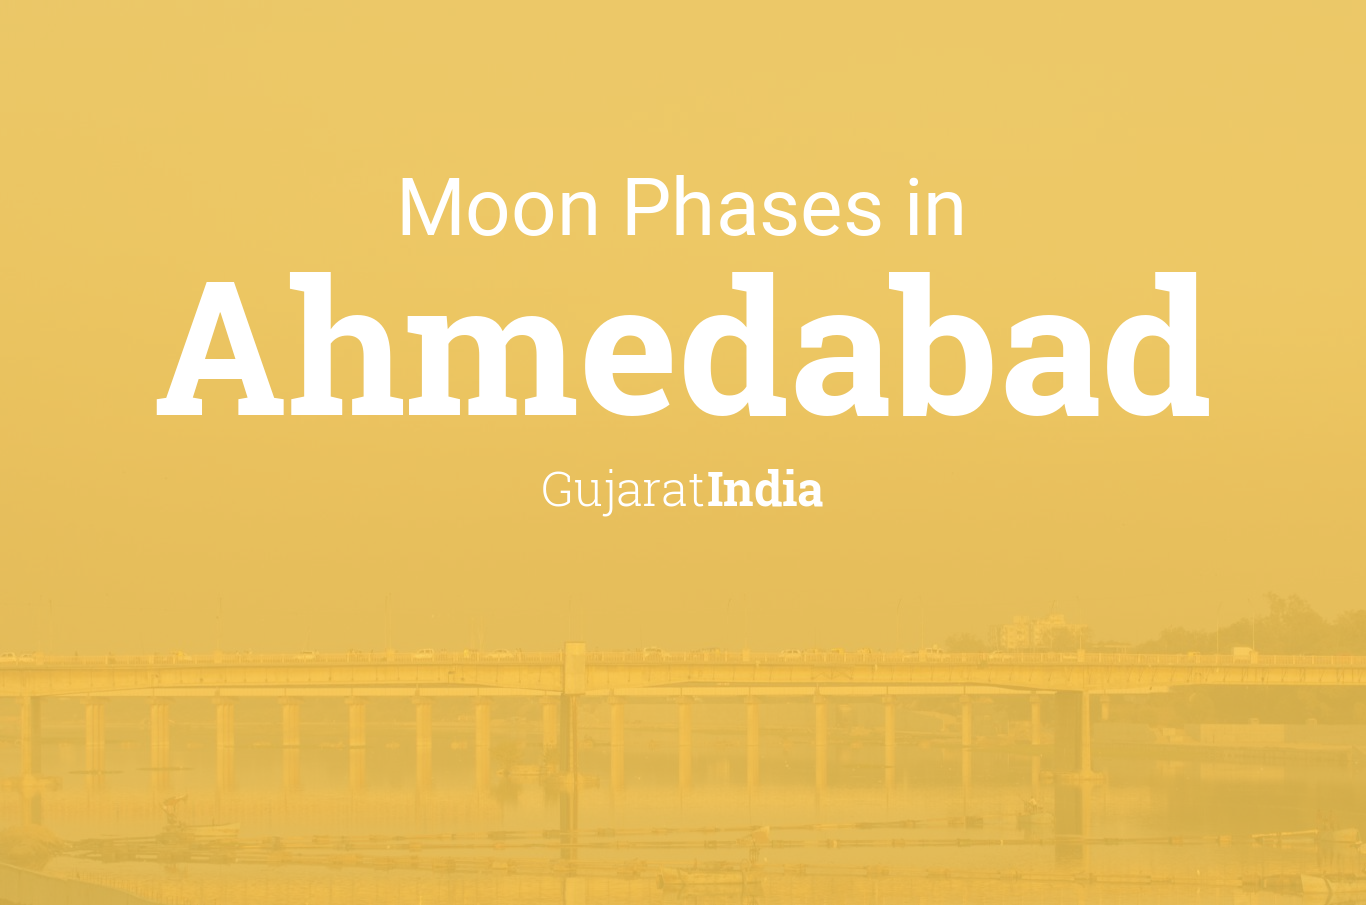 Moon Phases 2019 – Lunar Calendar for Ahmedabad, Gujarat, India